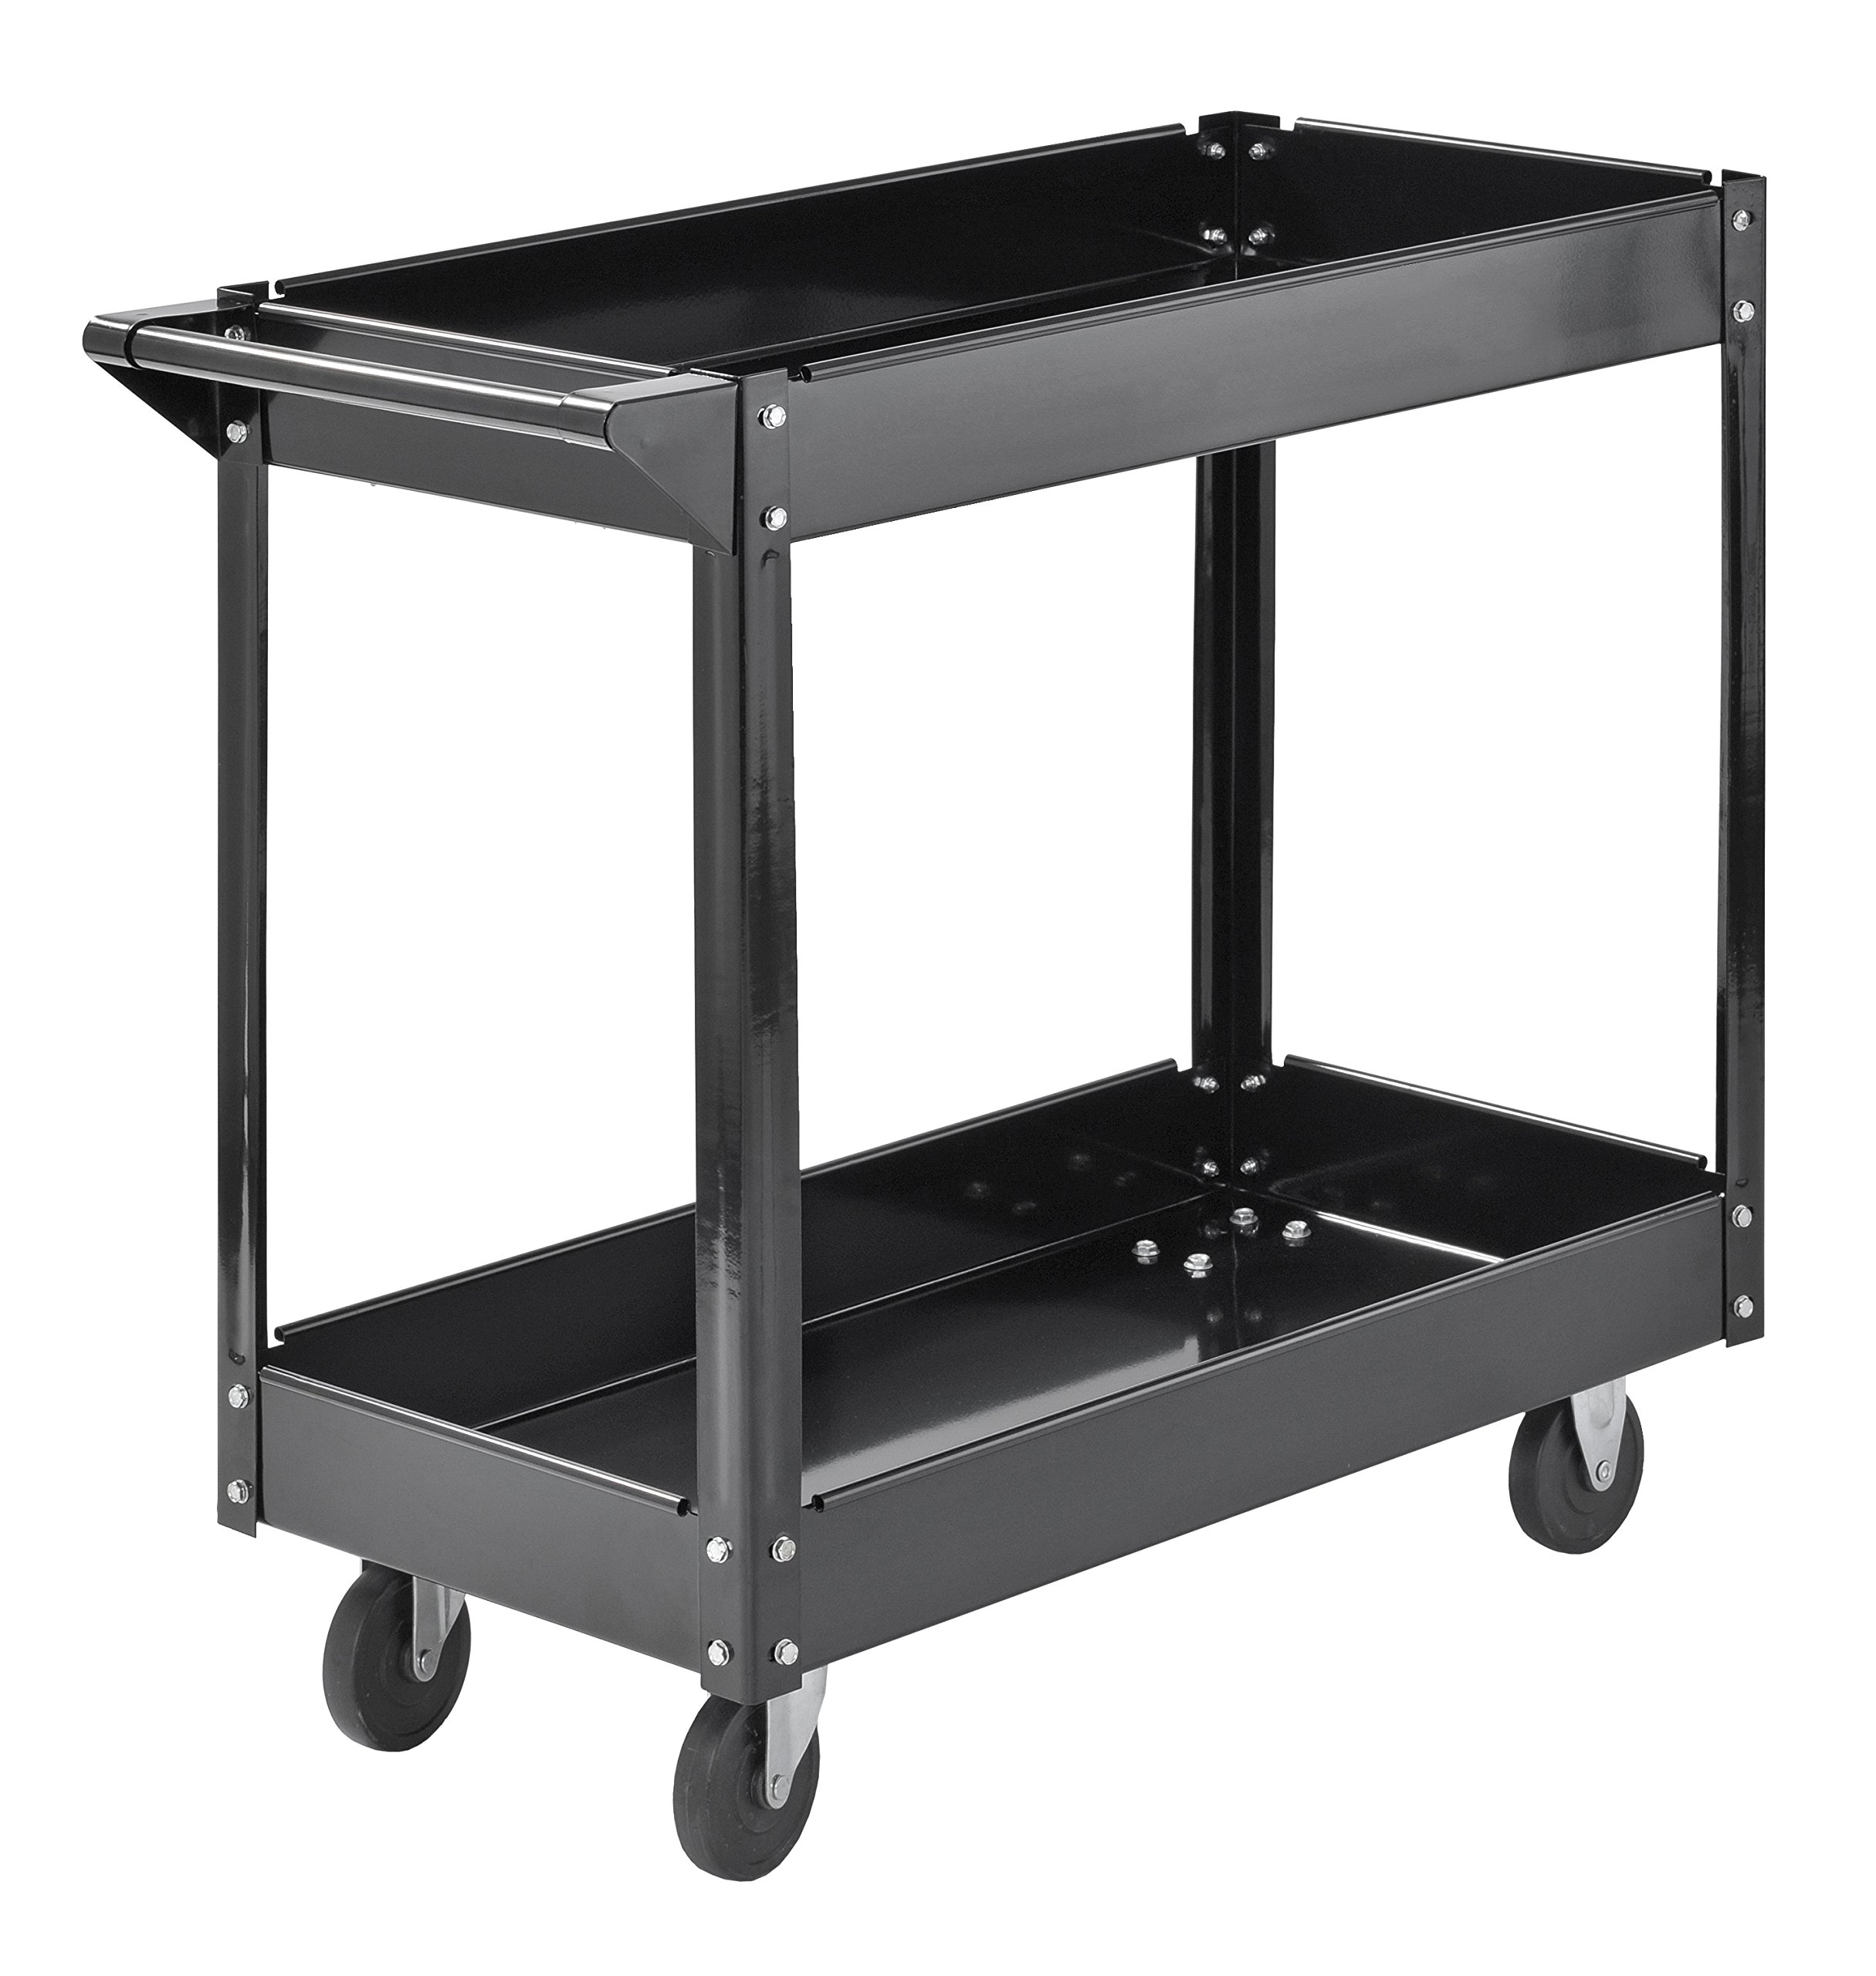 Muscle Rack SC3016 Industrial Black Commercial Service Cart, Steel, 220Lbs Capacity, 33'' Width x 30.5'' Height x 16'' Depth, 2 Shelves, 30.5'' Height, 33'' Width, 16'' Length by Muscle Rack (Image #4)